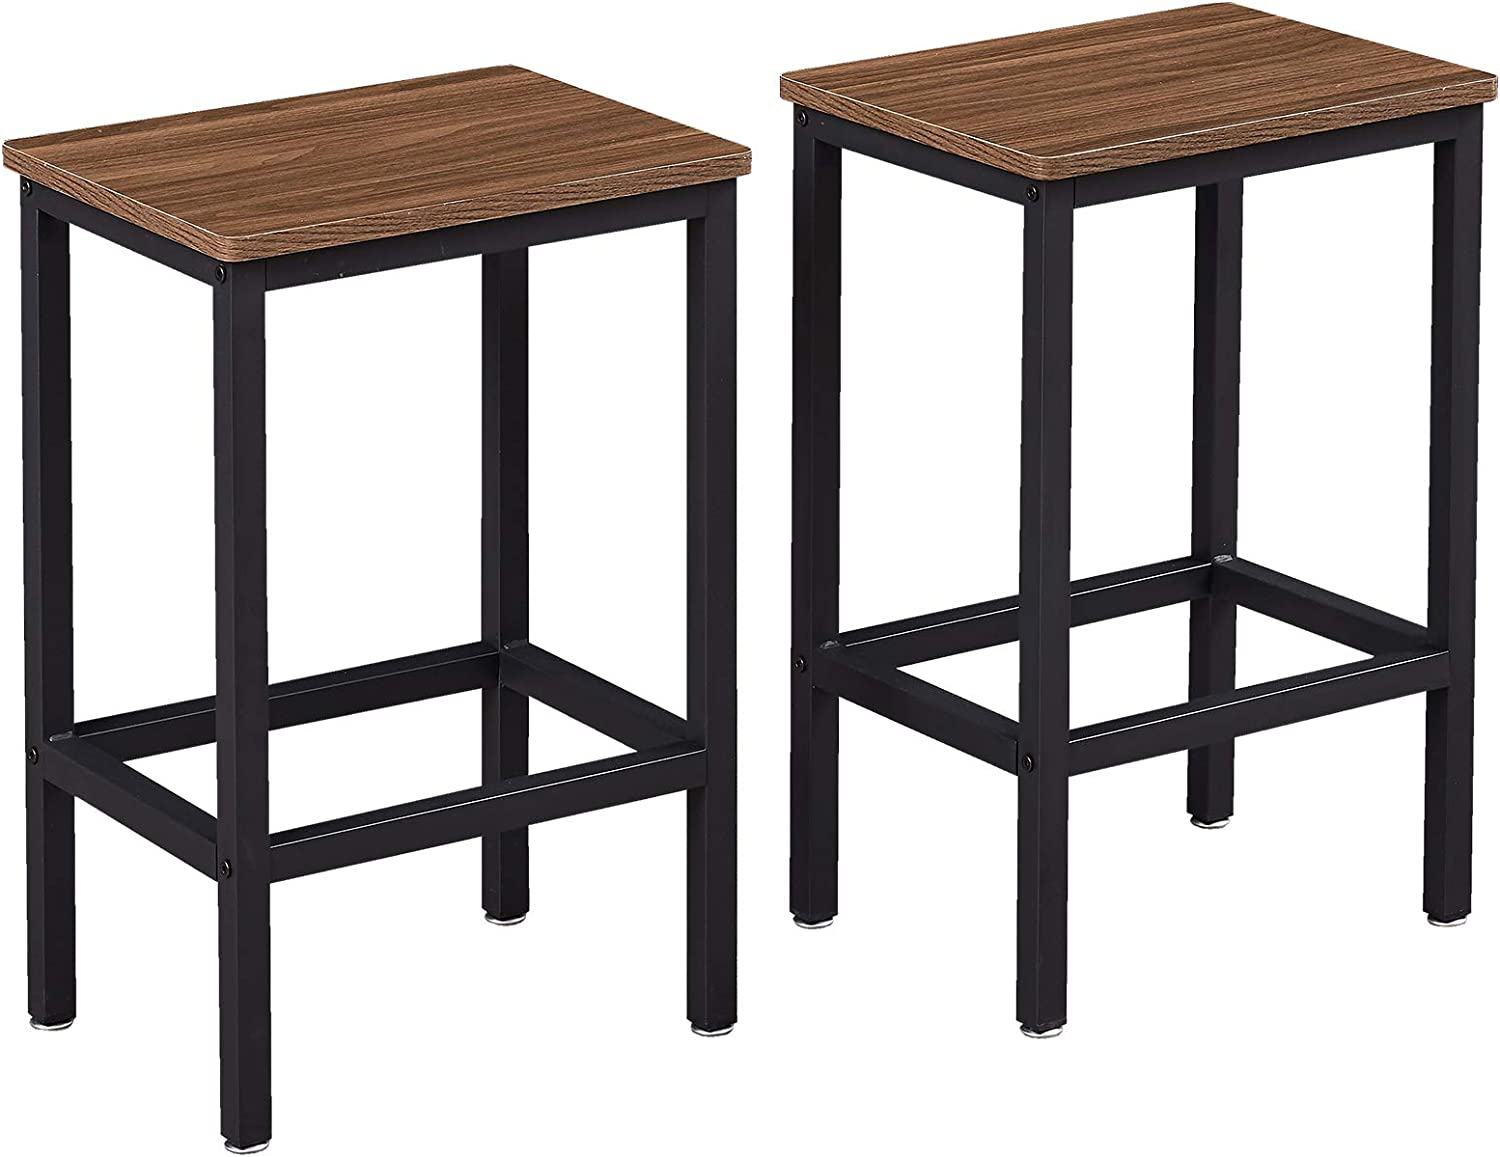 SUPERJARE Set of 2 Bar Stools, Industrial Barstools Chairs and Footrest with Steel Frame, Pub Kitchen Counter Height Bar Chairs - Brown